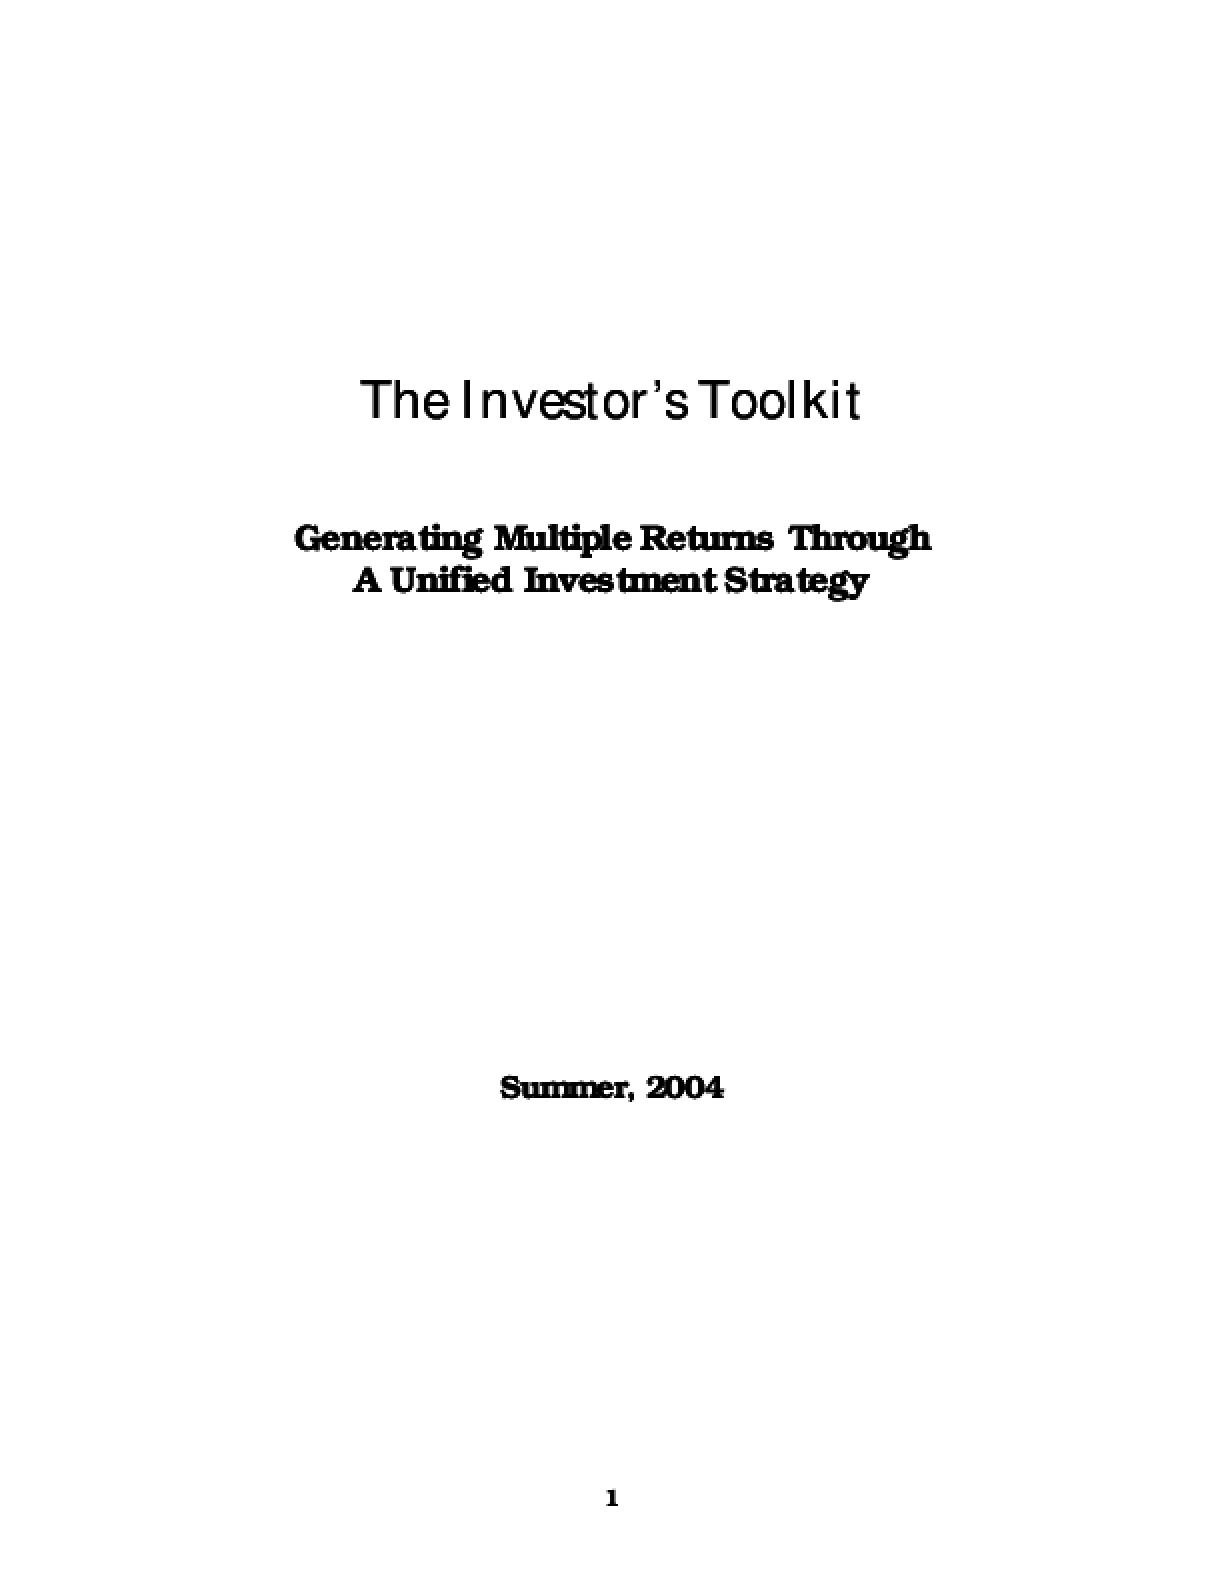 The Investor's Toolkit: Generating Multiple Returns Through a Unified Investment Strategy